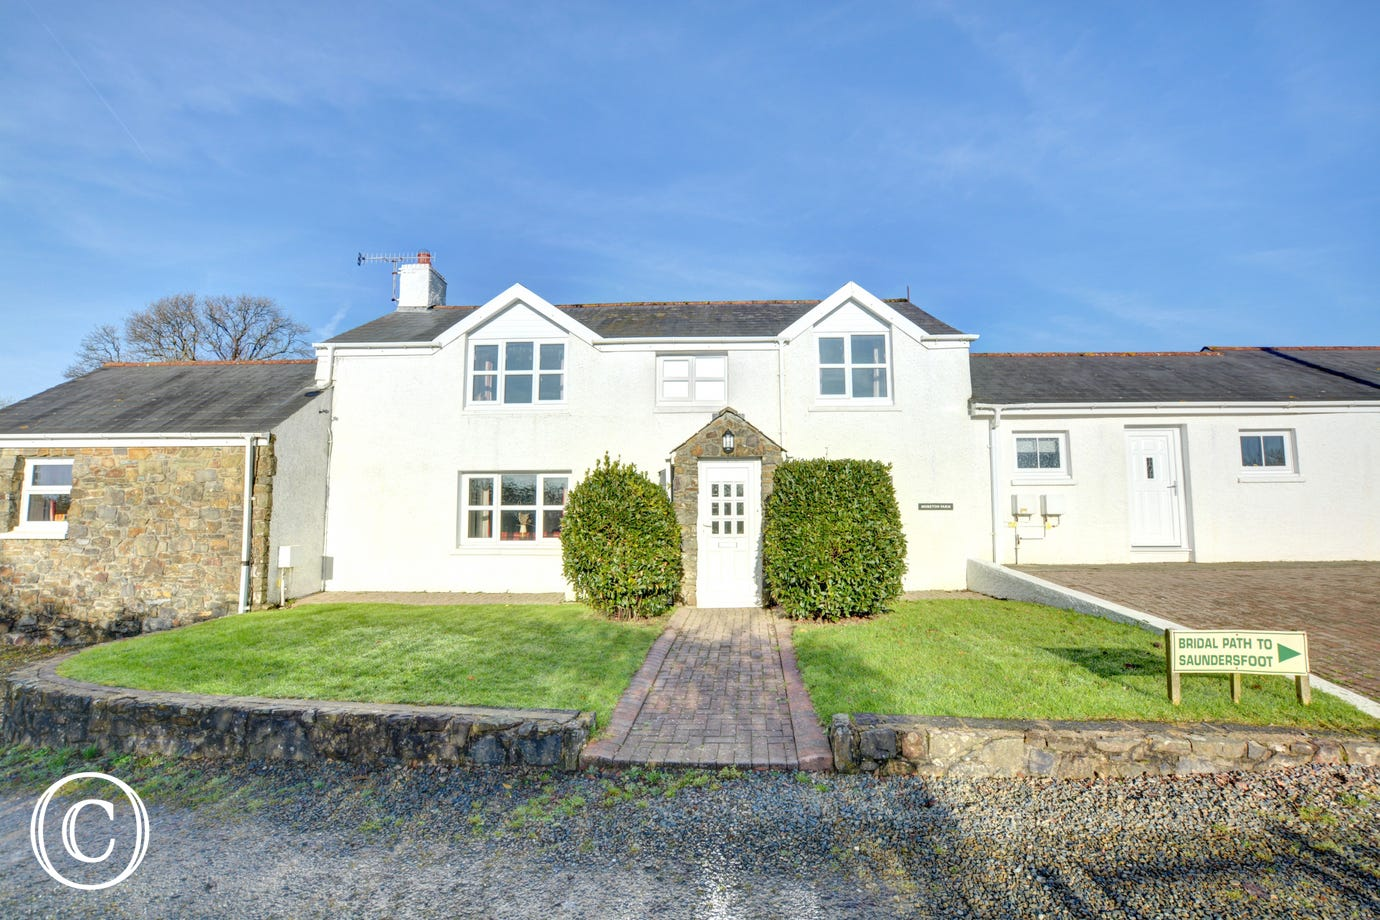 Exterior of Moreton Farmhouse with lawn to the front of the property, parking for 3 cars.